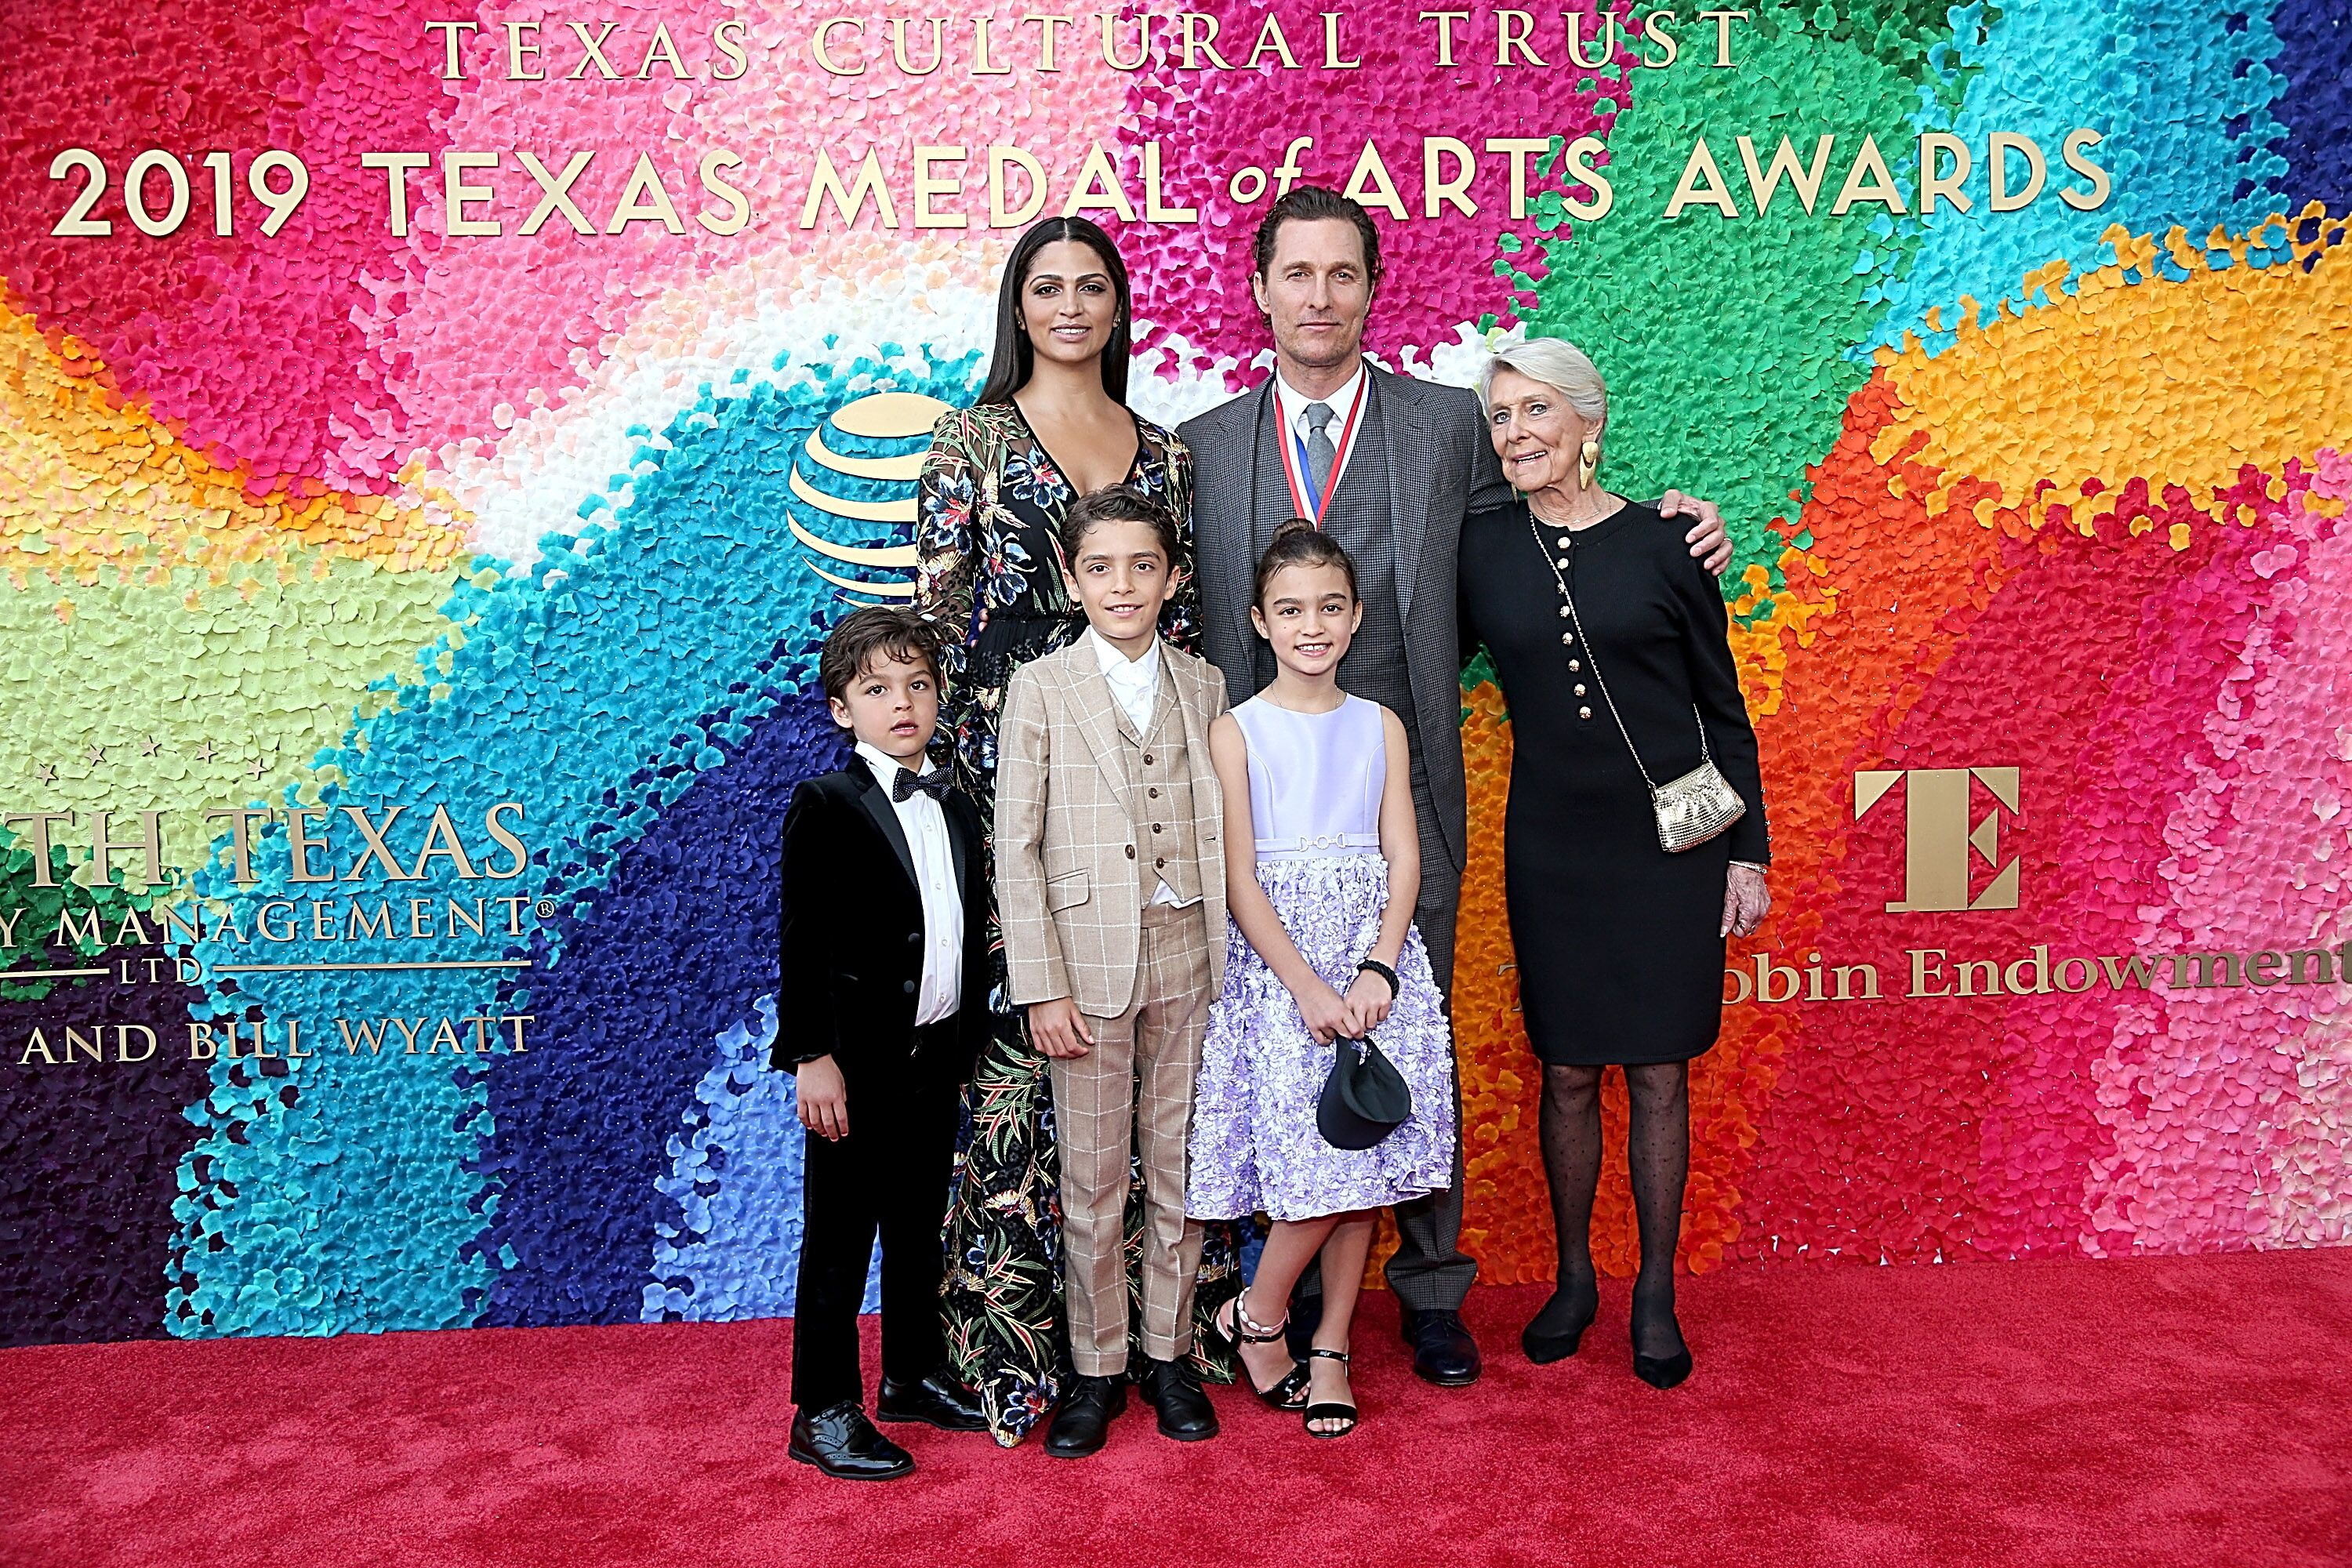 Matthew McConaughey,wife Camila Alves, their children and his mother Kay McConaughey attend the Texas Medal Of Arts Awards at the Long Center for the Performing Arts in Austin, Texas in 2019 | Source: Getty Images